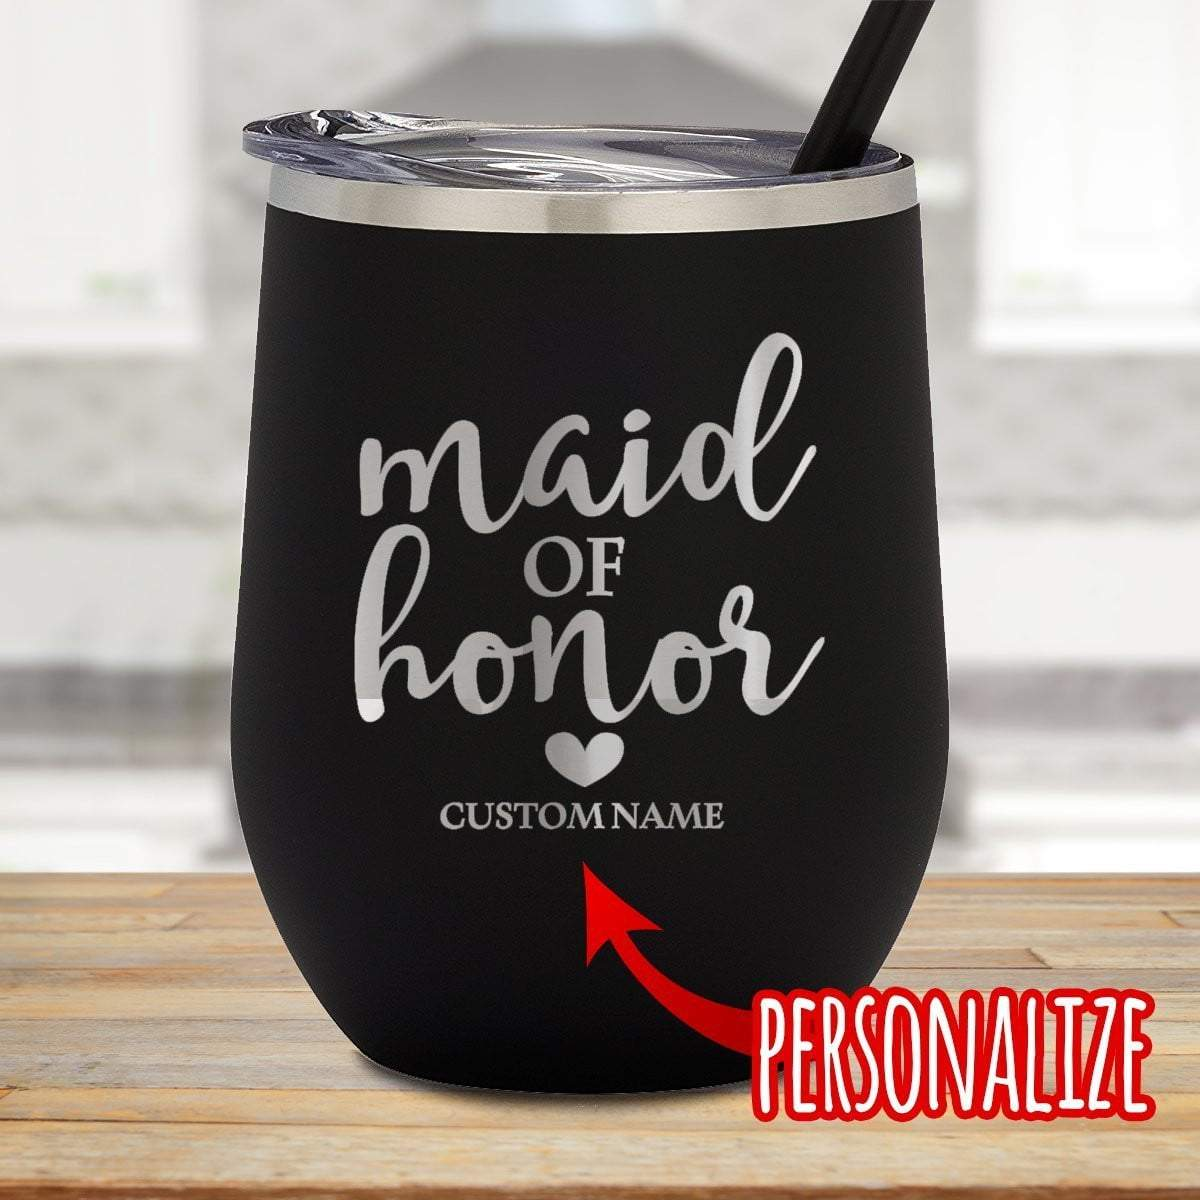 Maid Of Honor Personalized Stemless Wine Glass